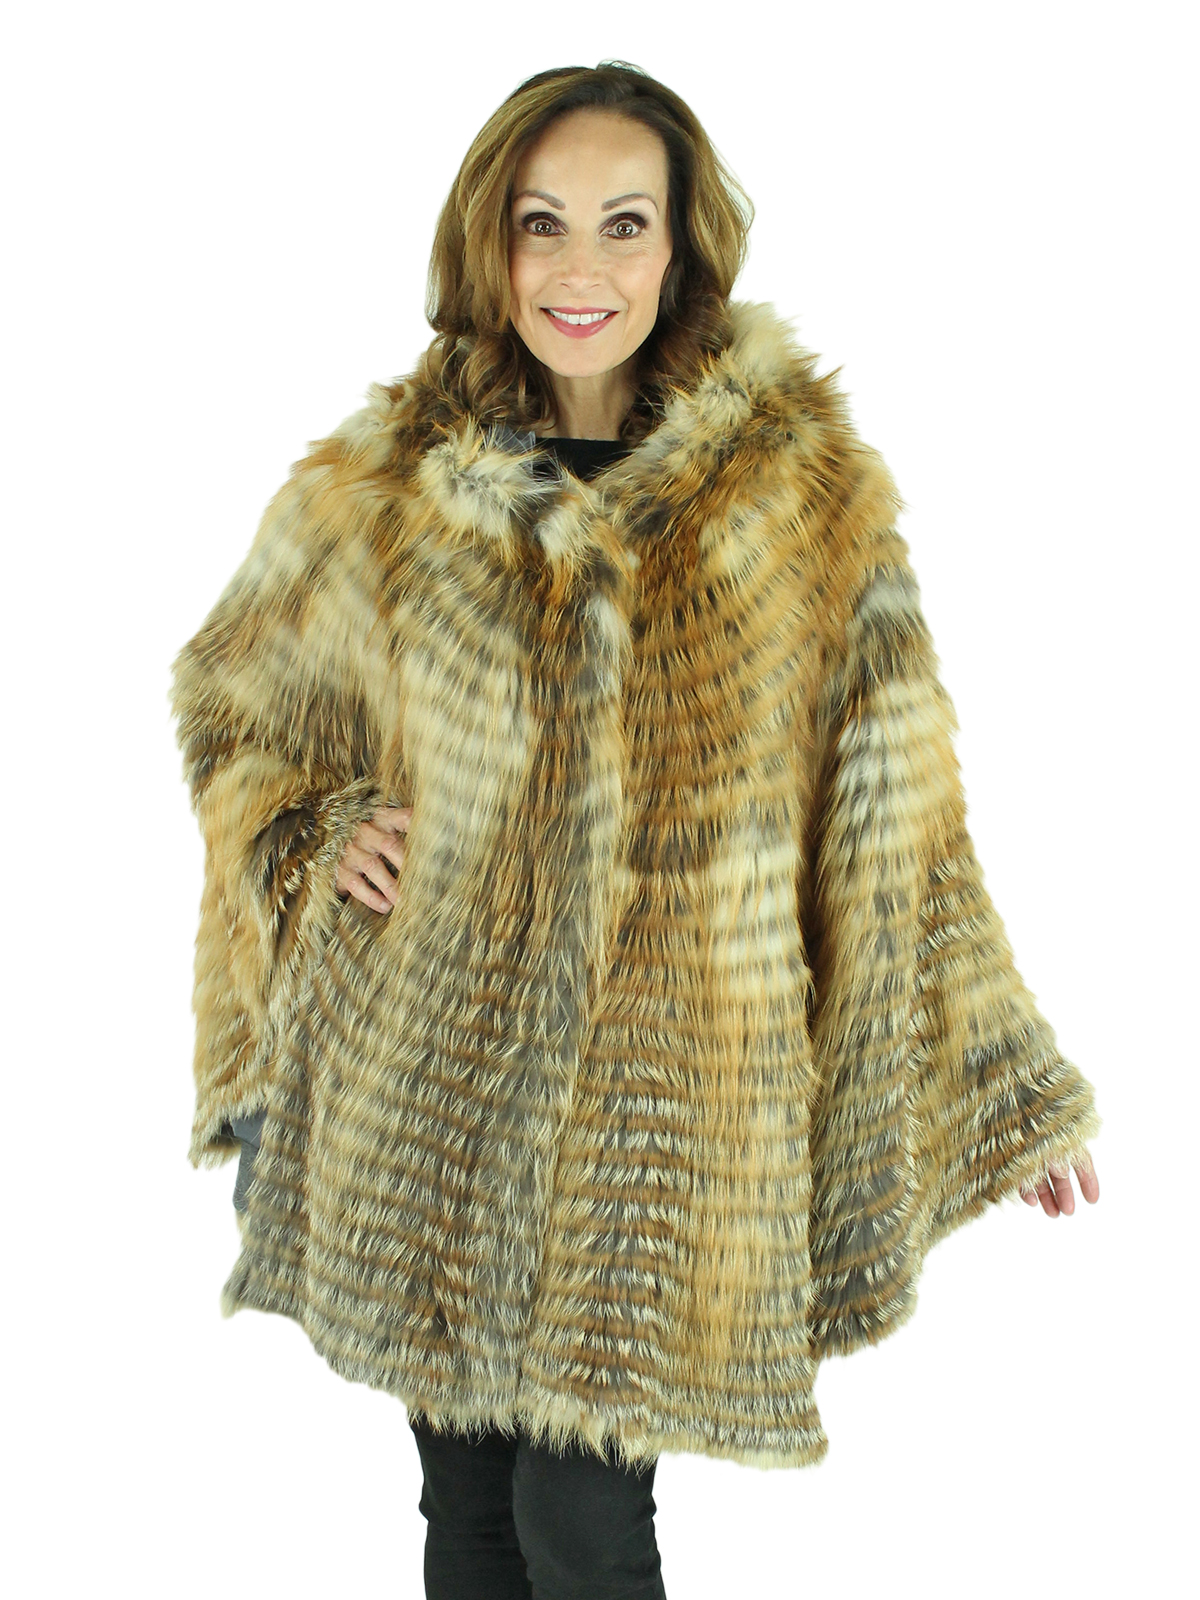 Woman's Natural Red Fox Fur Cape with Hood